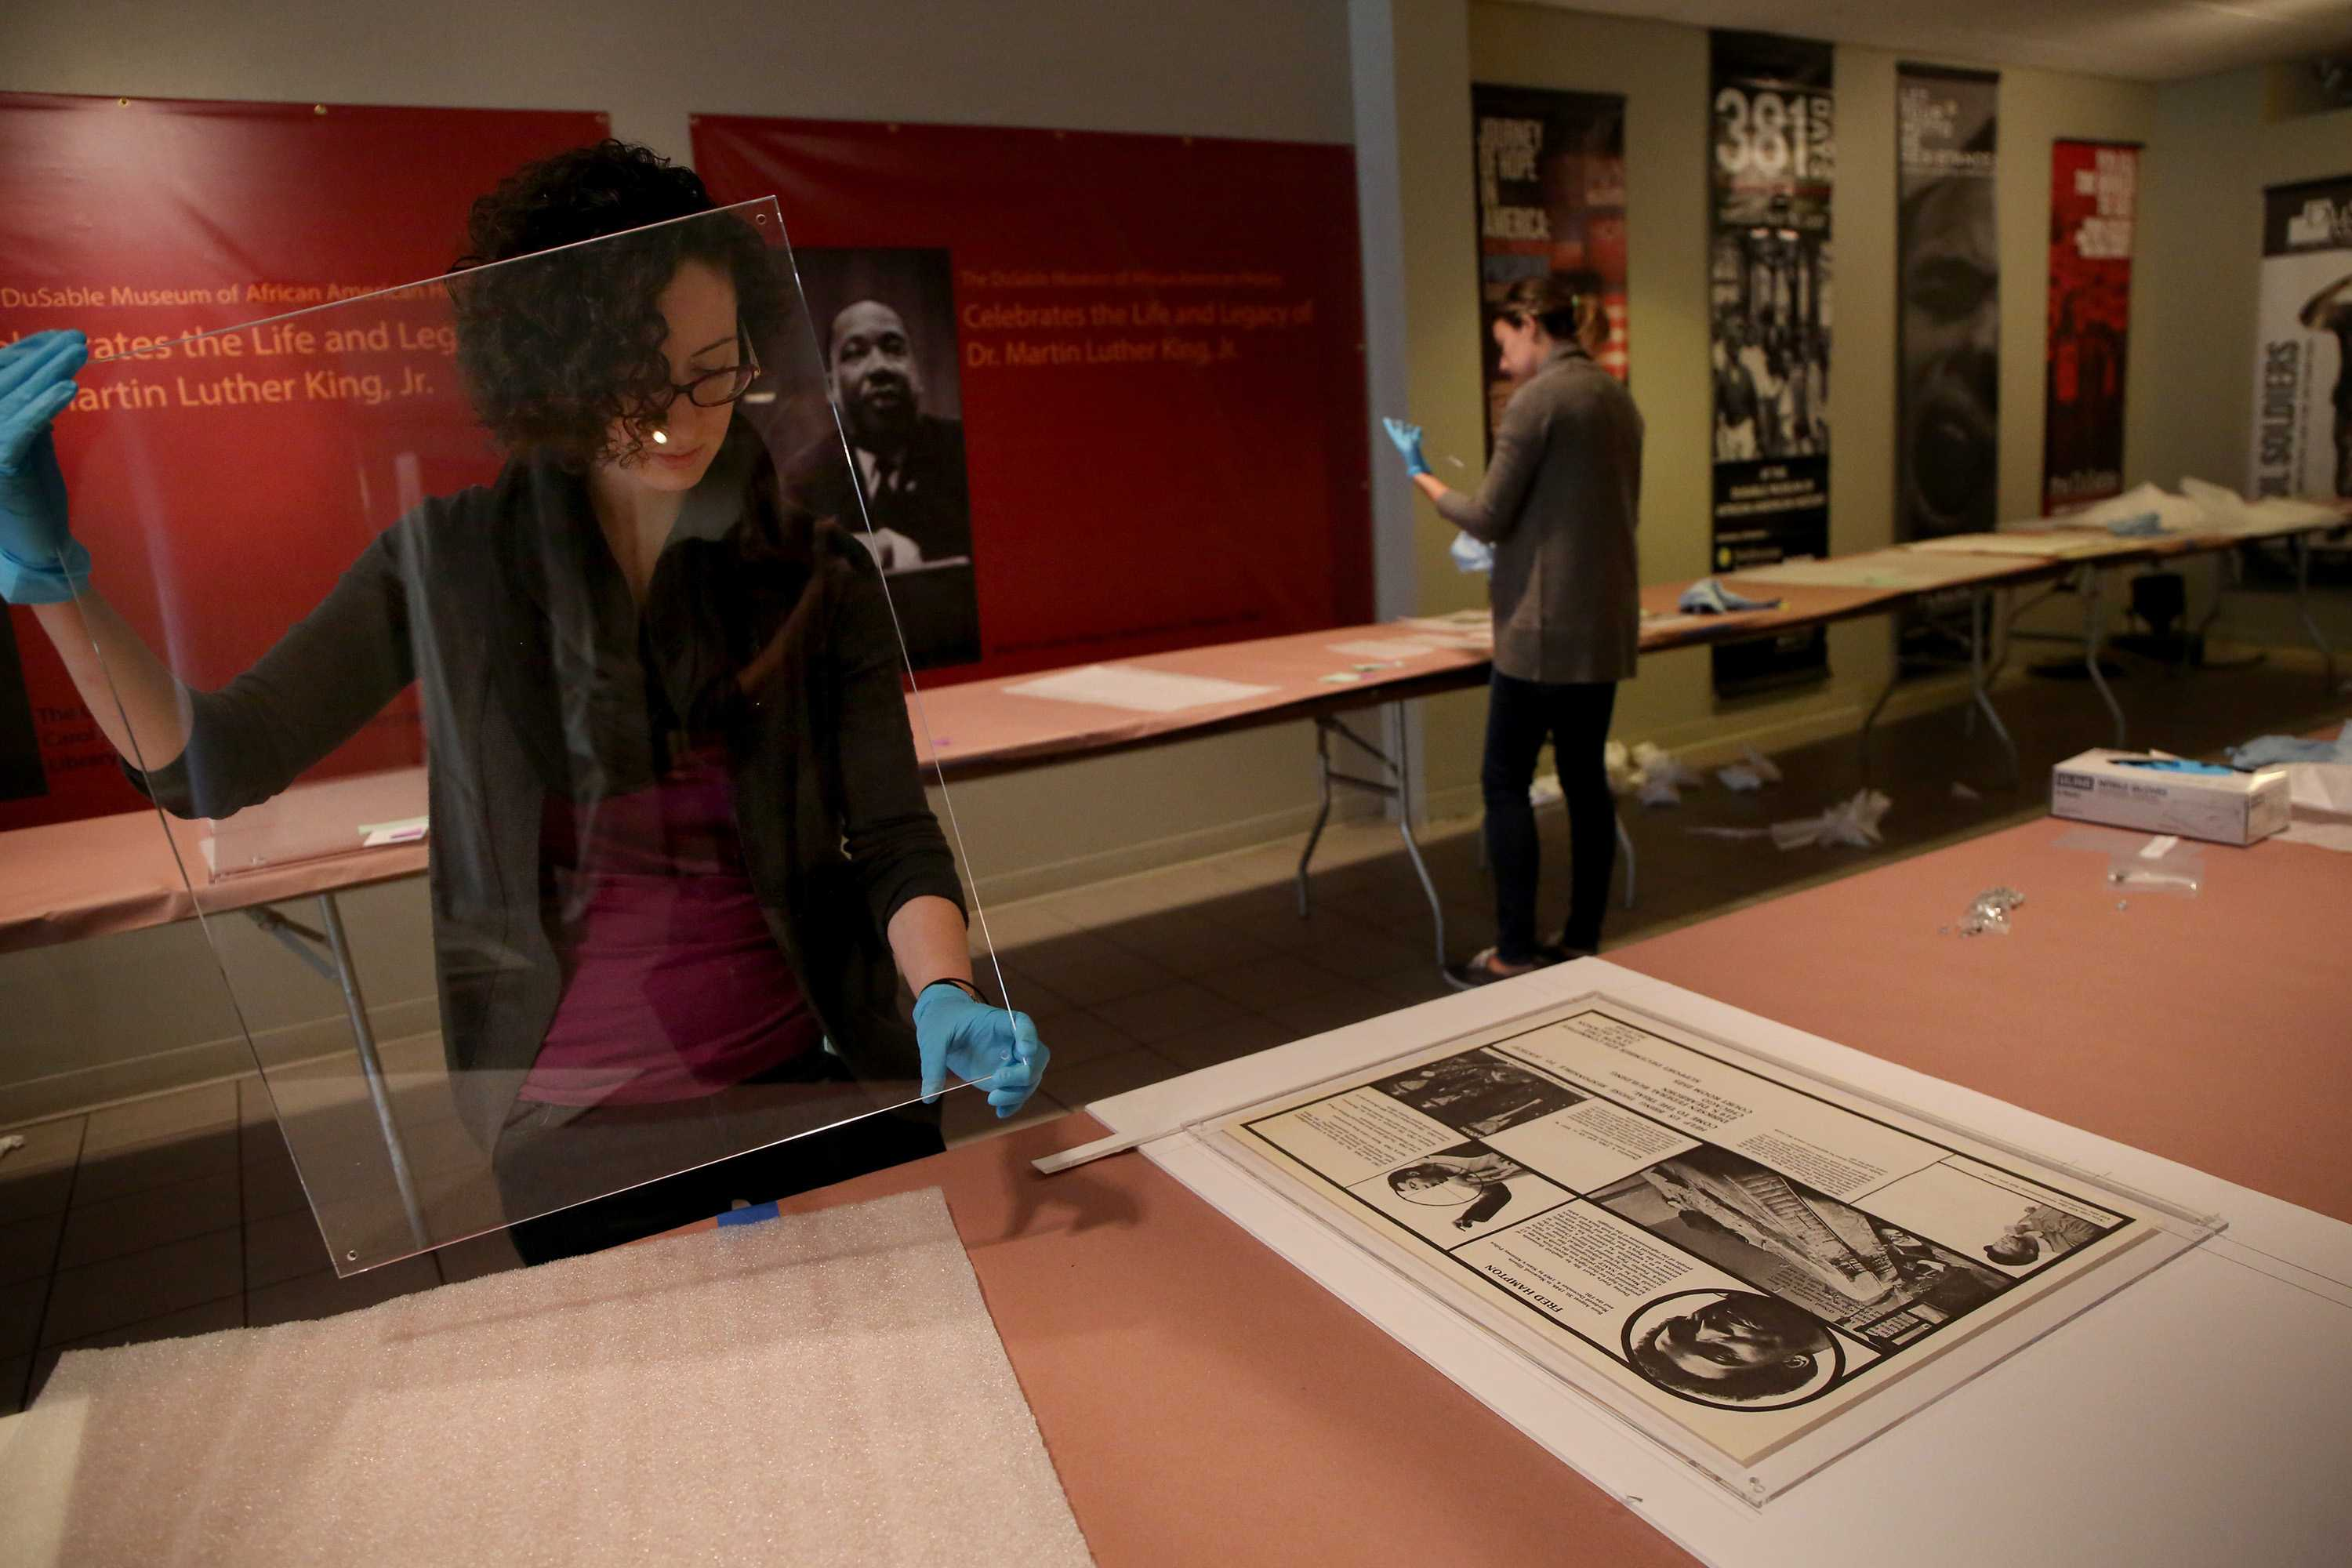 Workers set up display for African American art.